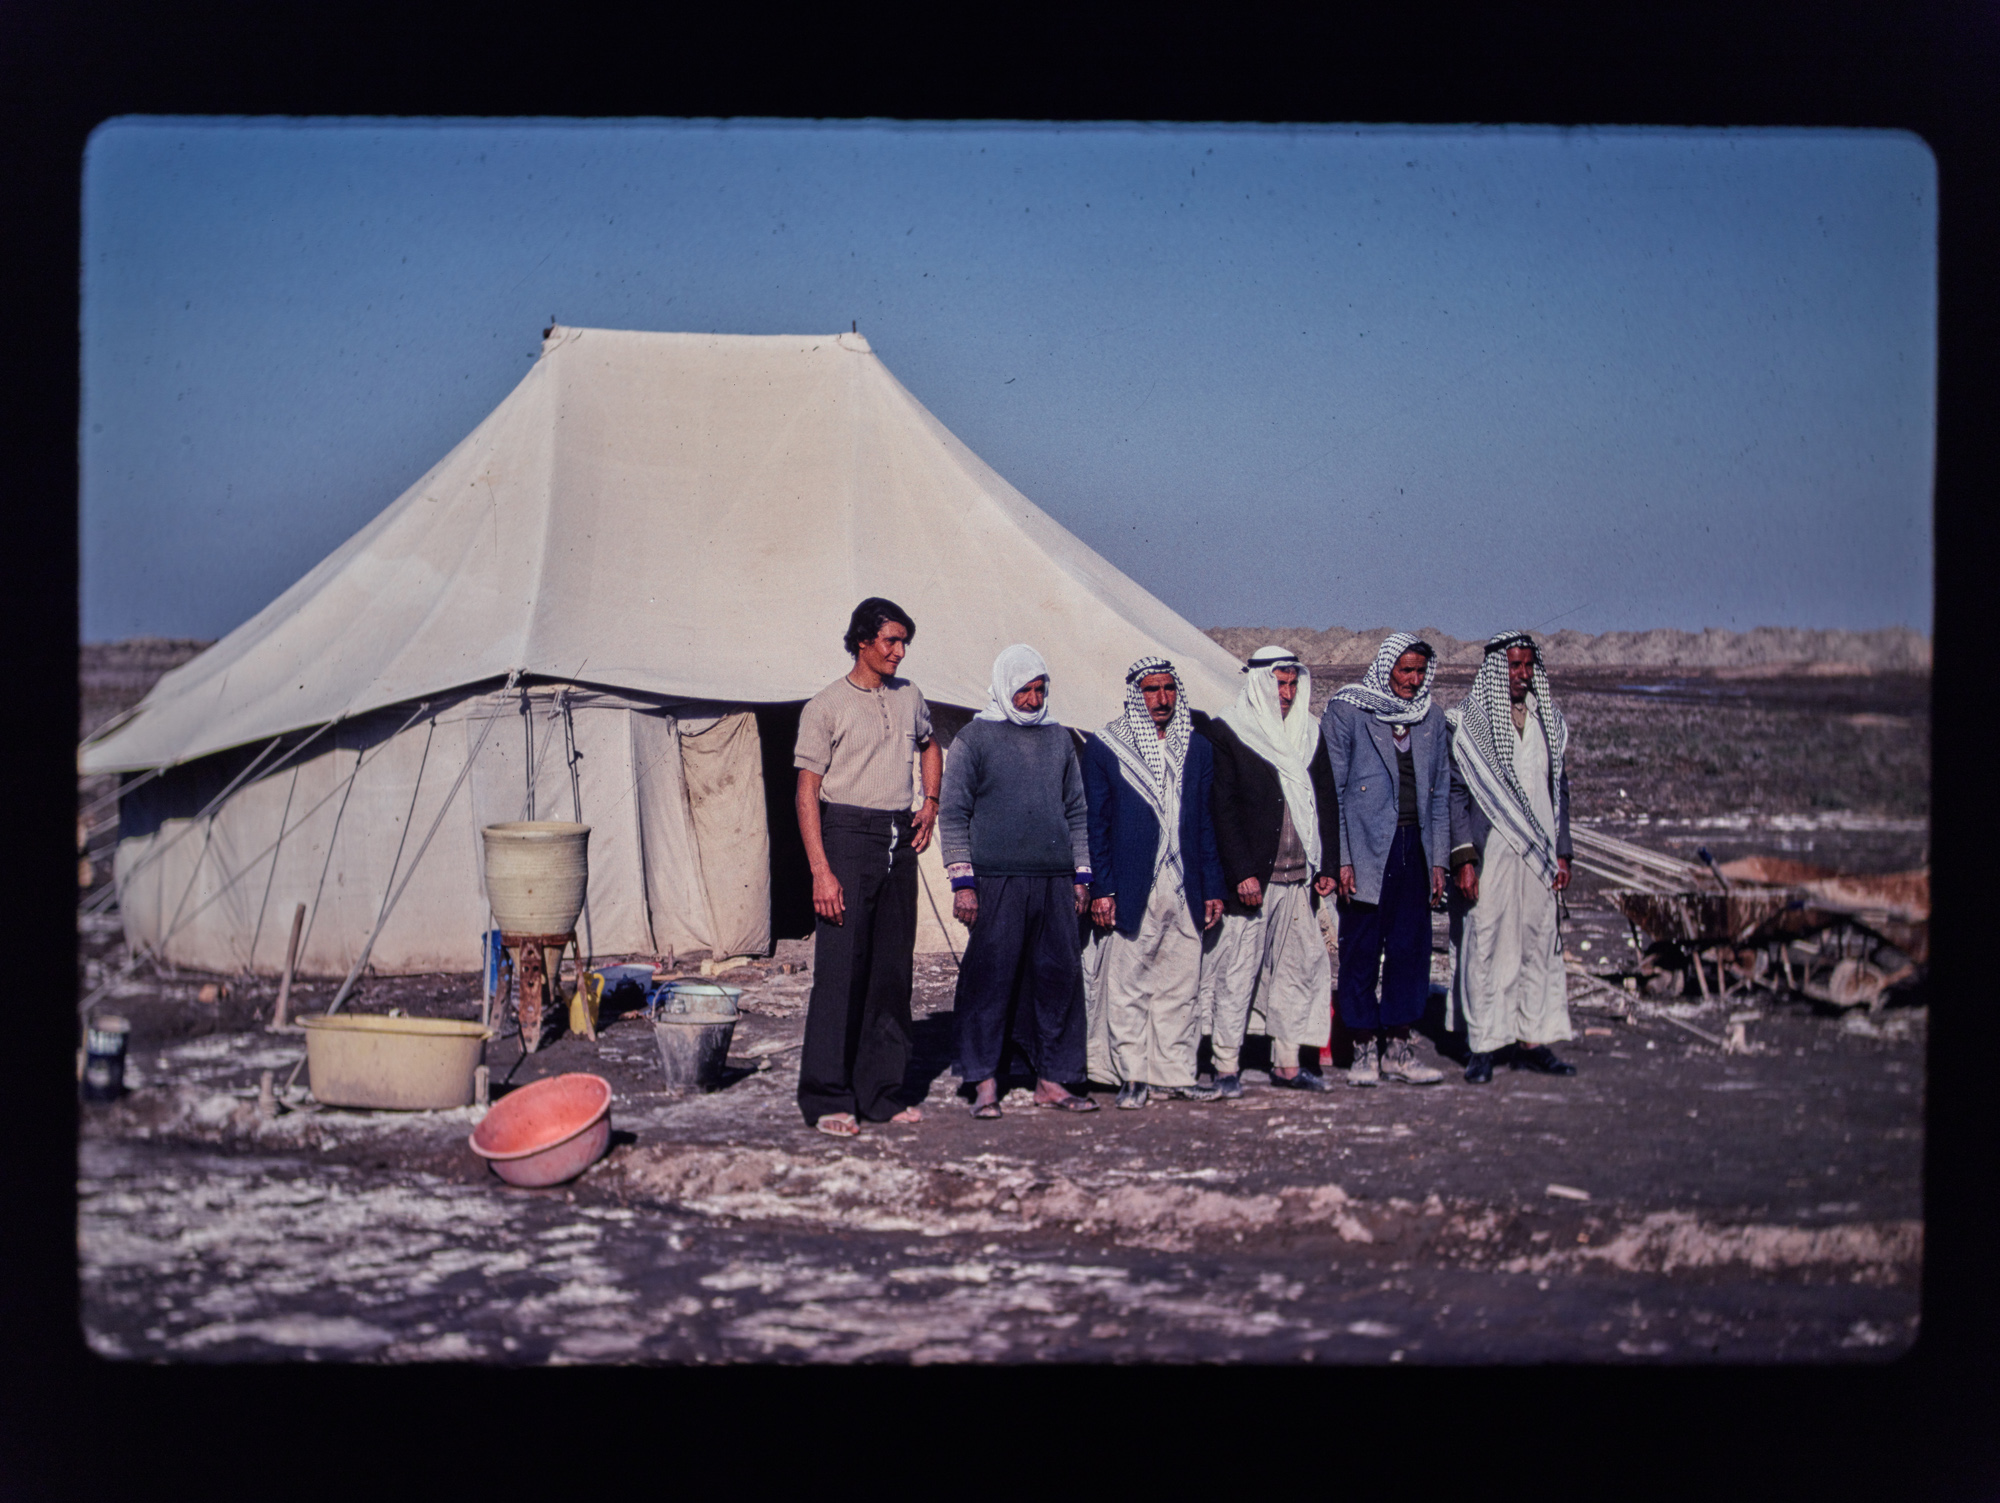 Sherqatis outside their tent at Abu Salabikh, 1978. (Image courtesy of Dr Ellen McAdam)